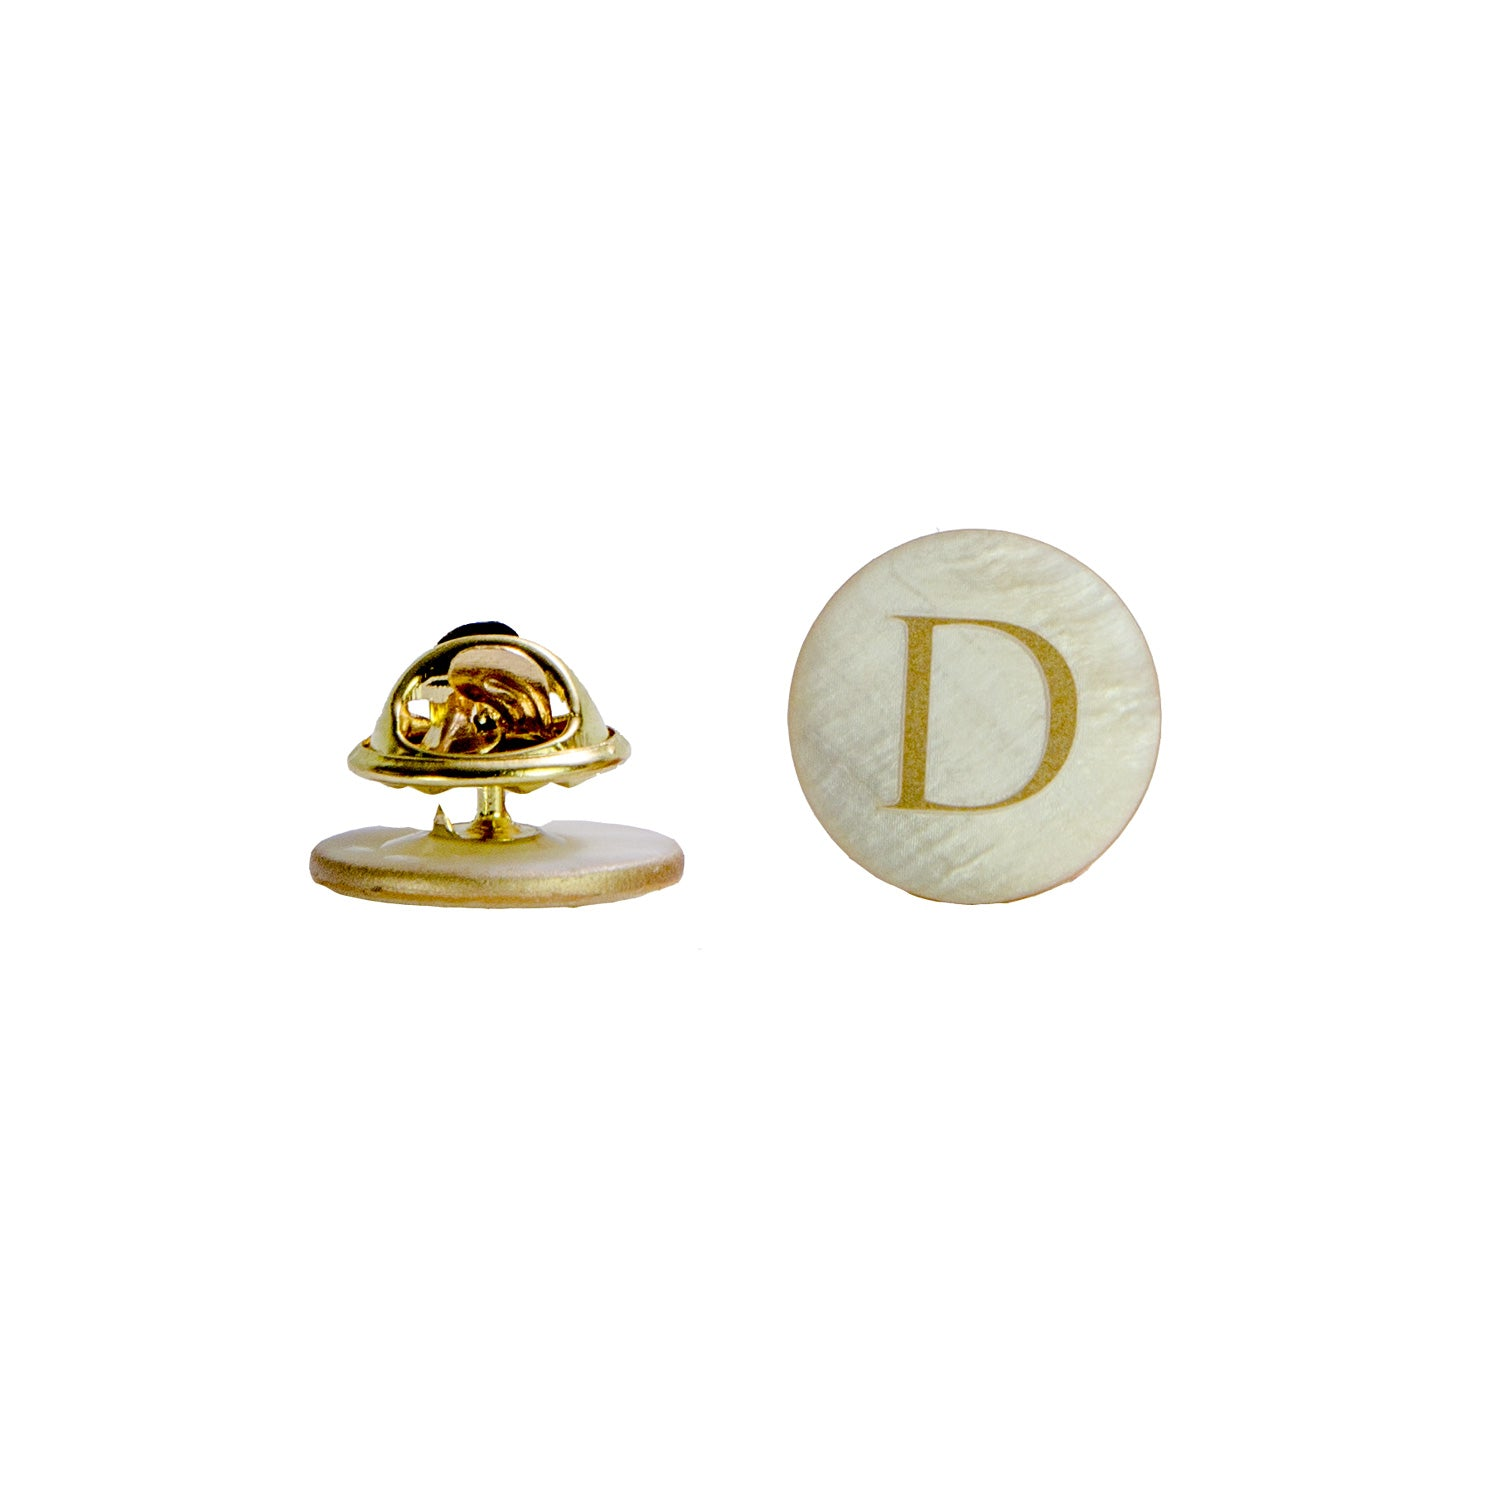 DARIO'S Couture Pin made of mother of pearl with personalization (50 pcs.)